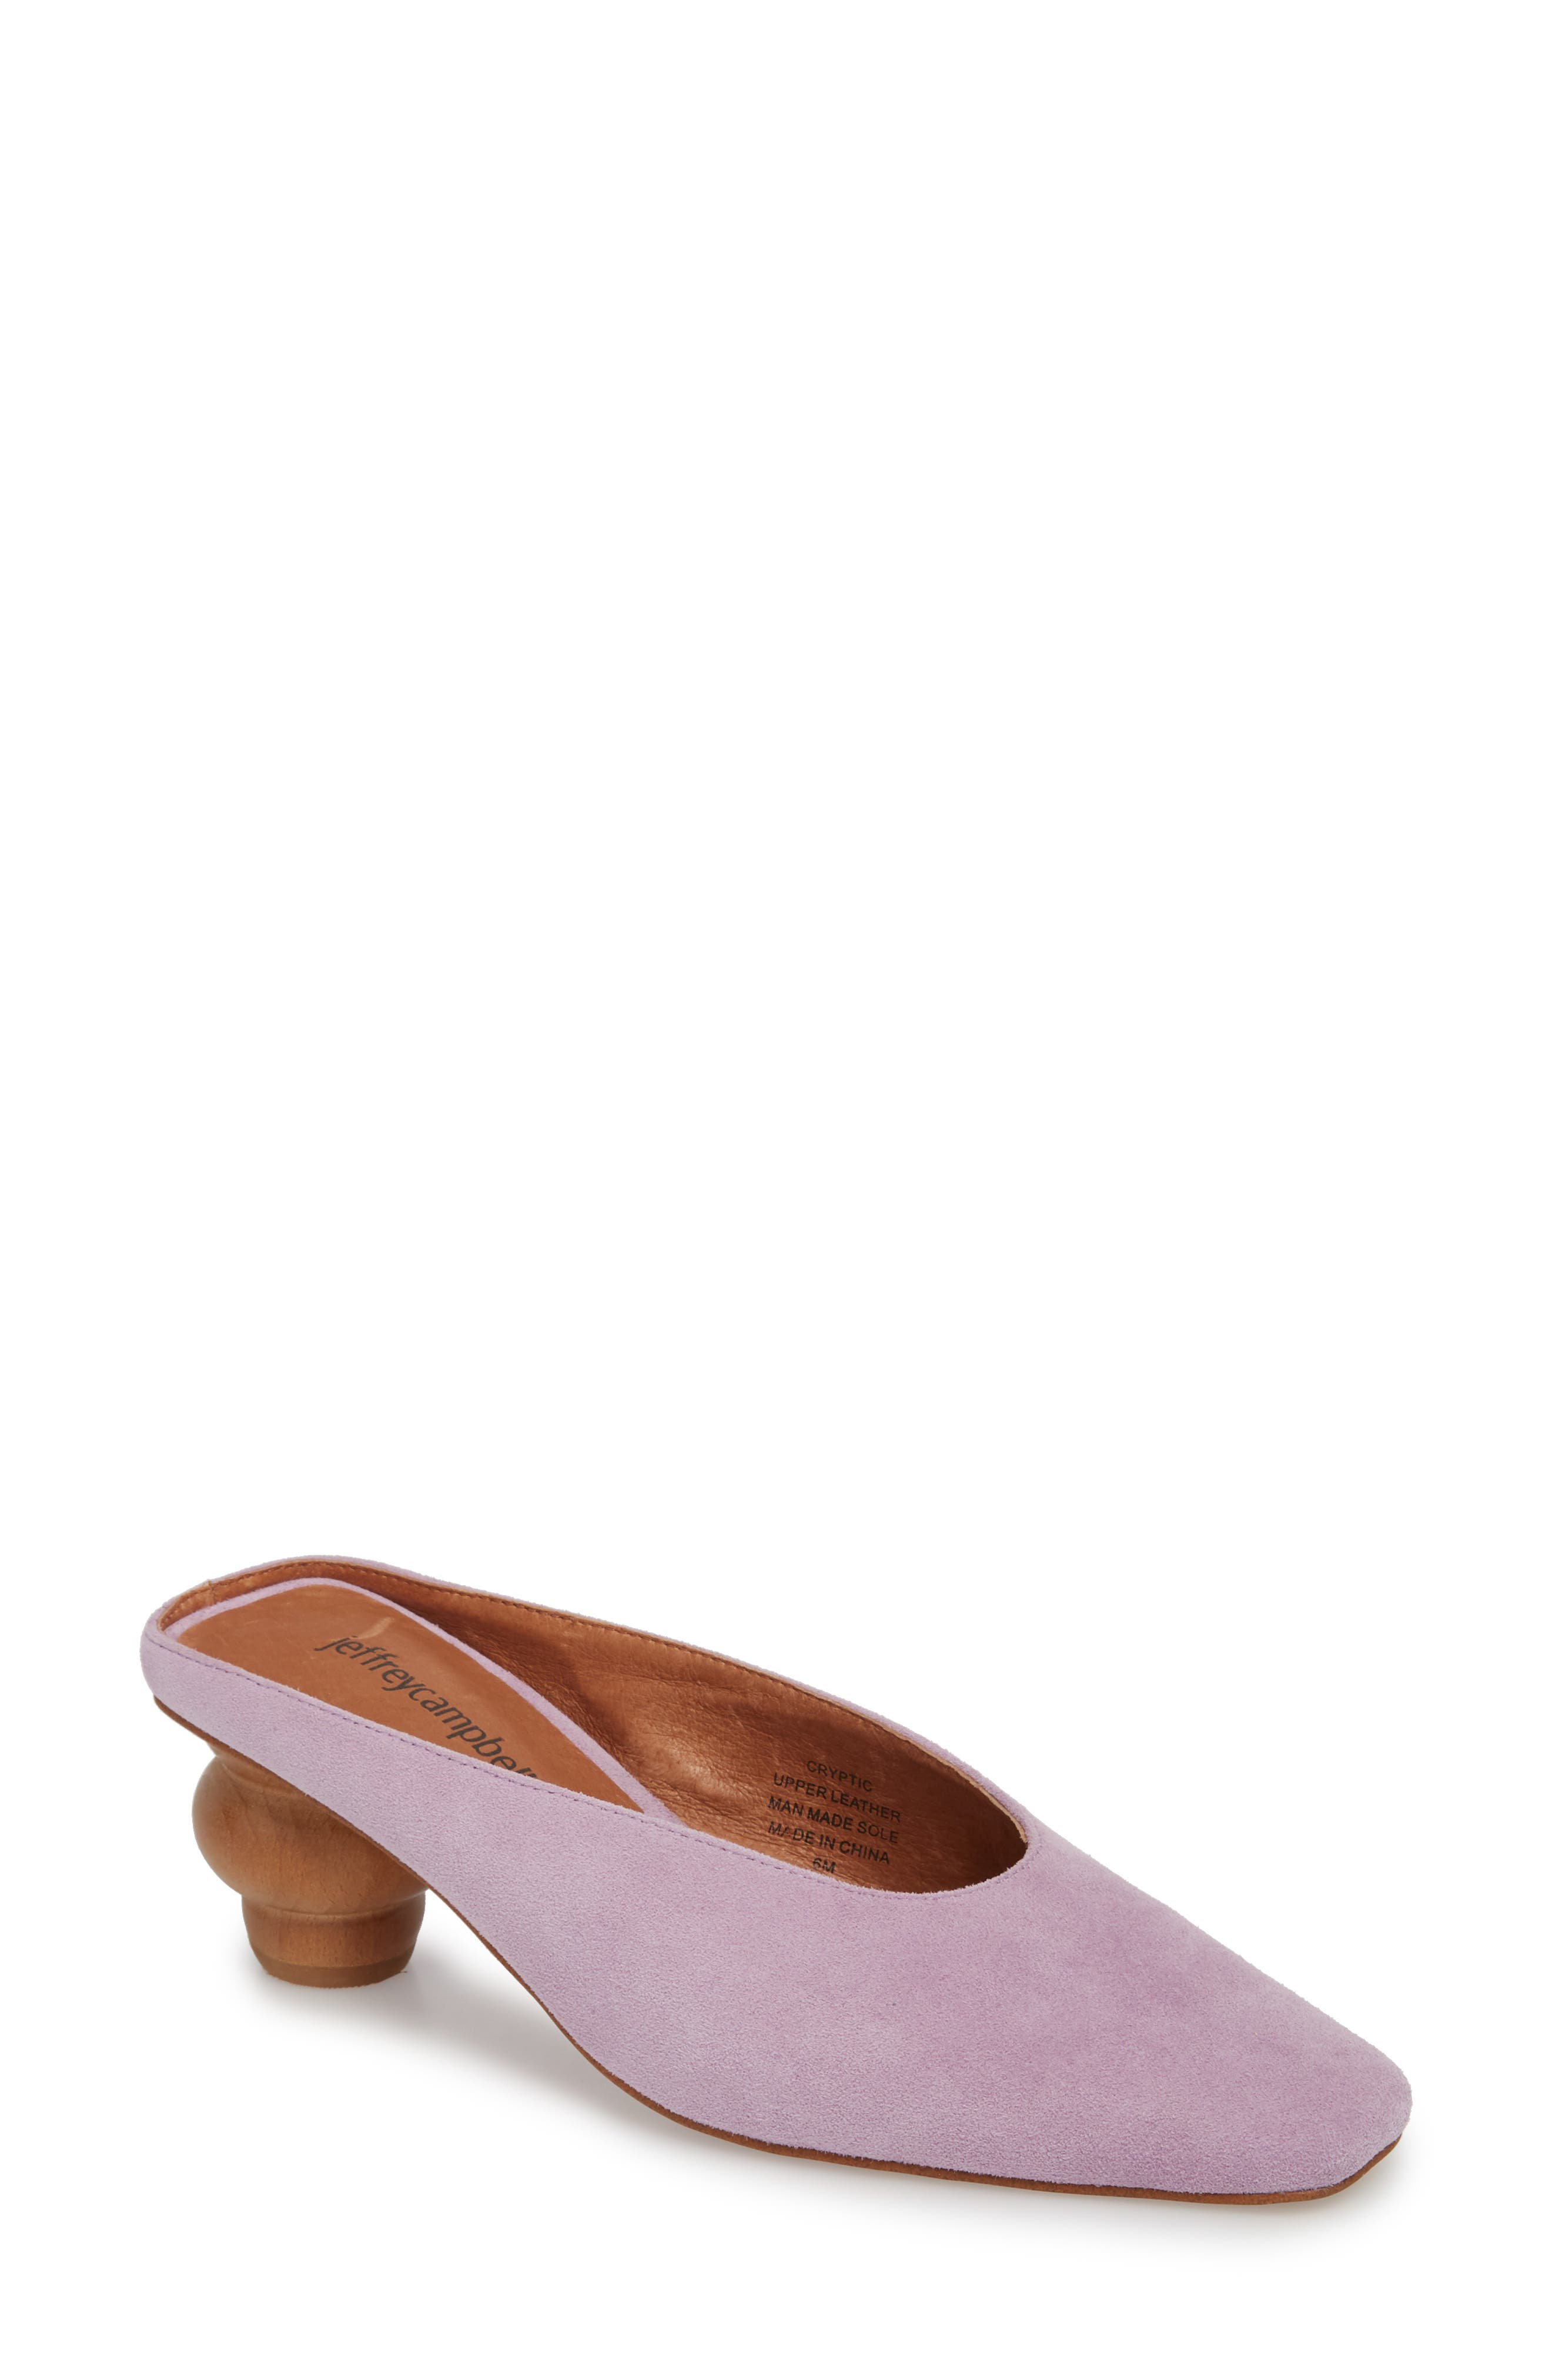 Cryptic Statement Heel Mule,                         Main,                         color, Lilac Suede